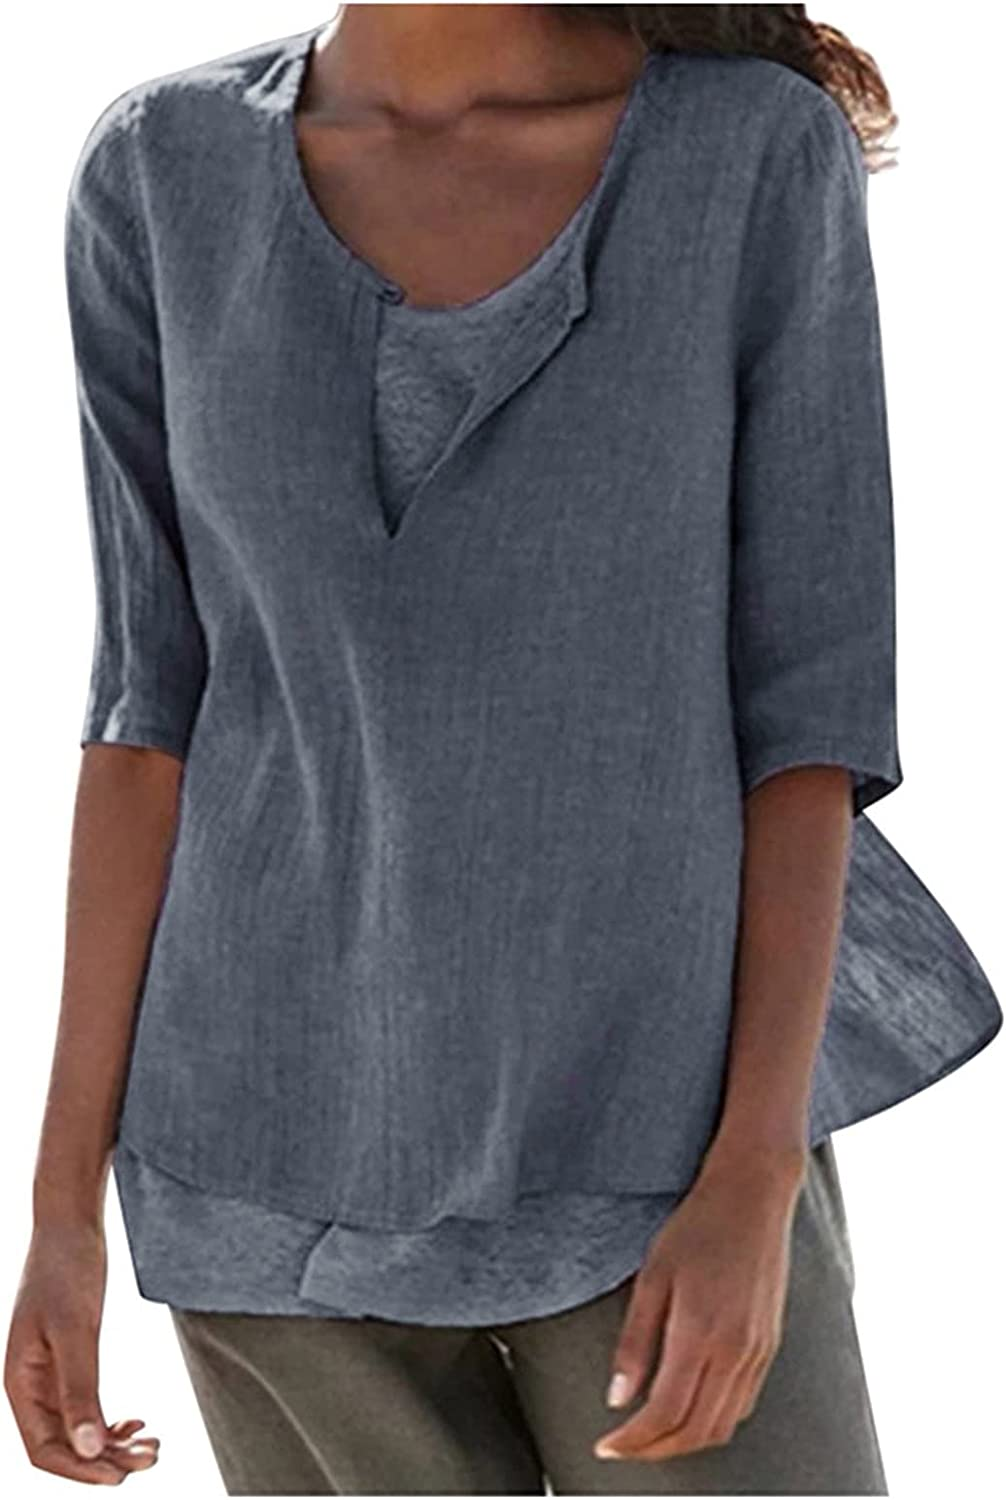 Limited price Women Summer Cotton Linen Tshirt Tops Blo Trendy Fit Solid NEW before selling ☆ Loose